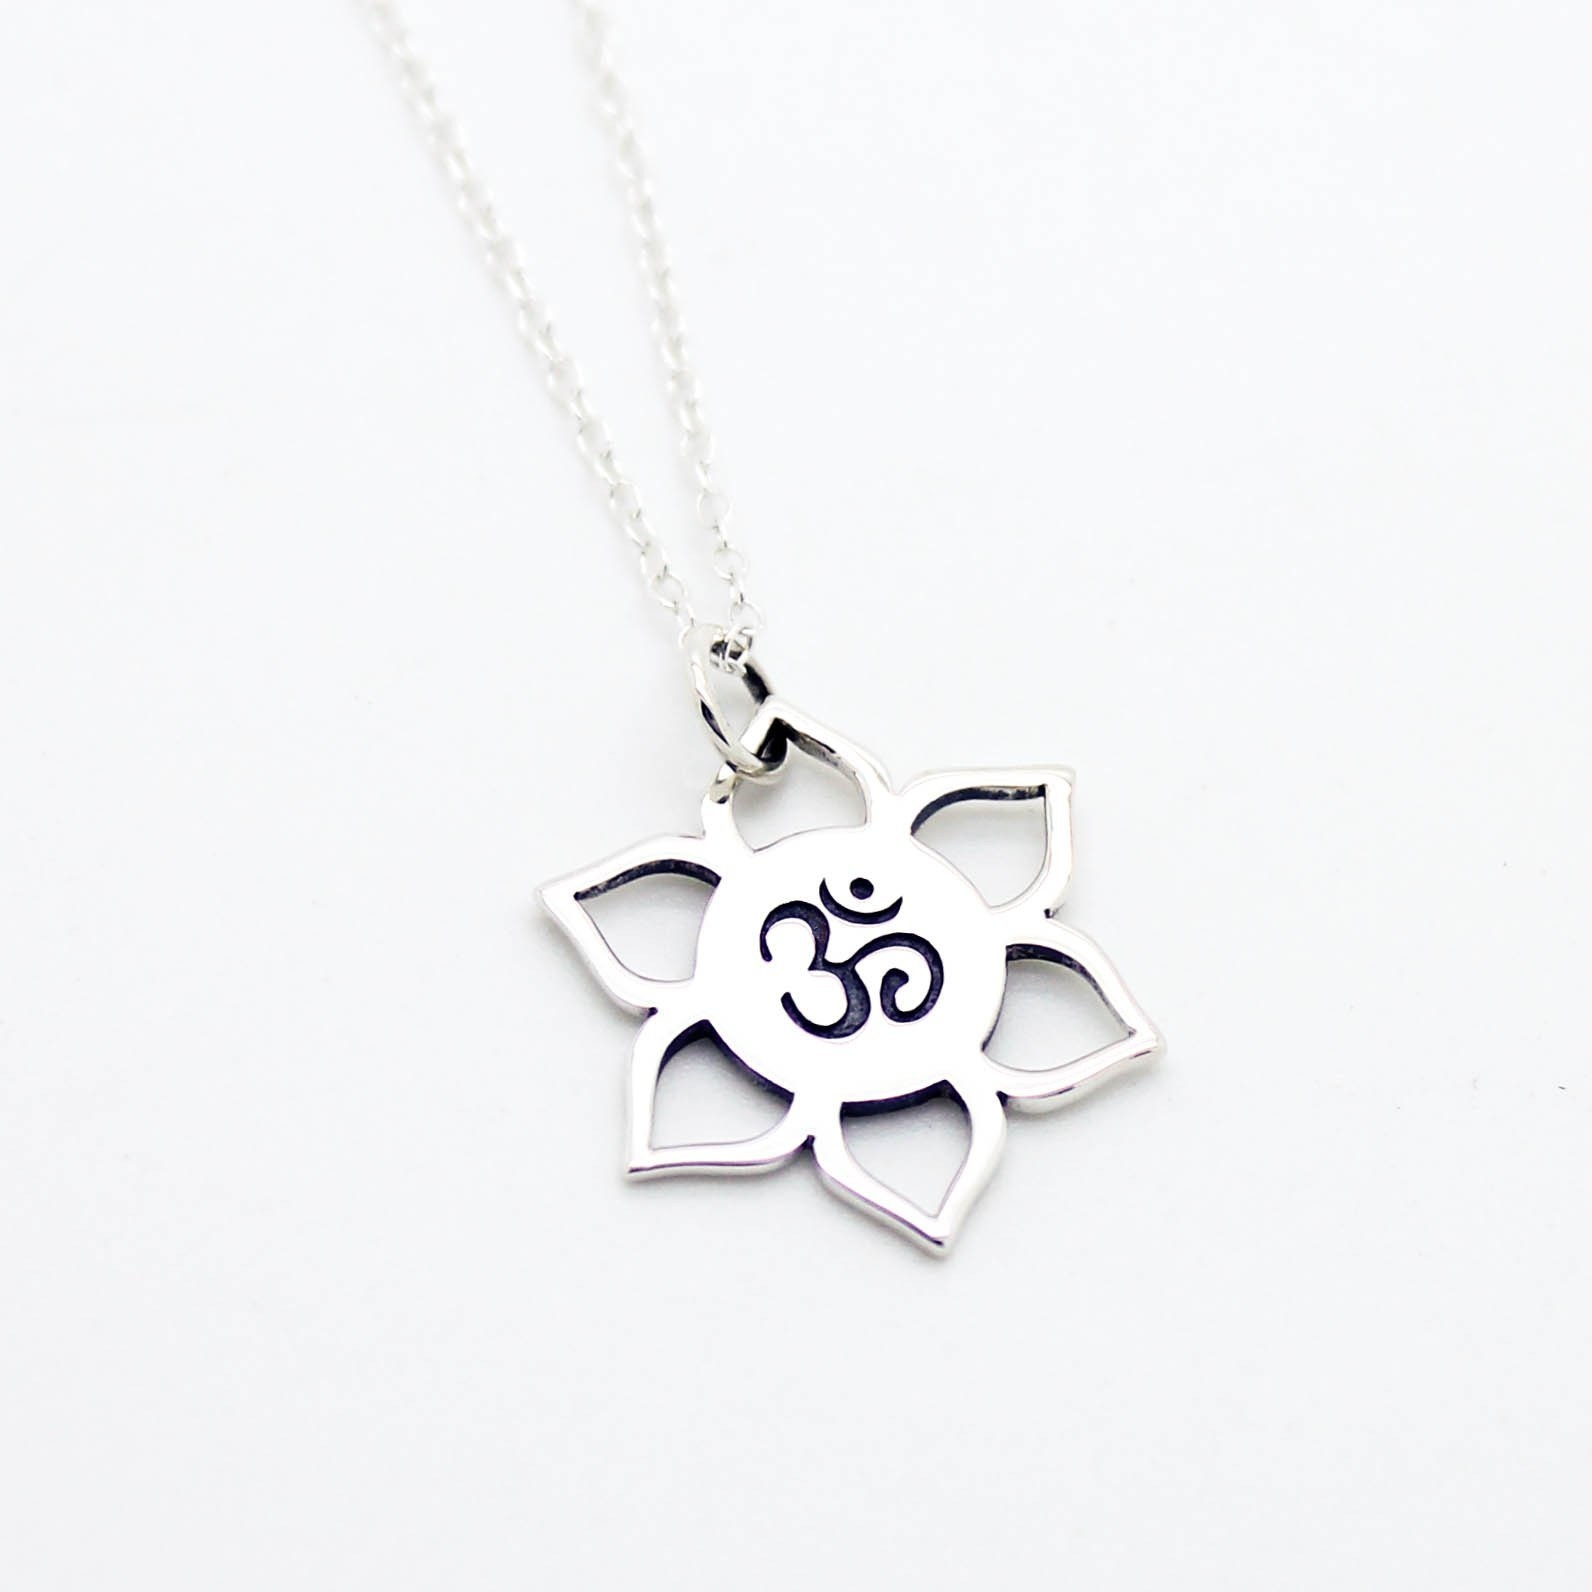 Image of Om Lotus sterling silver necklace